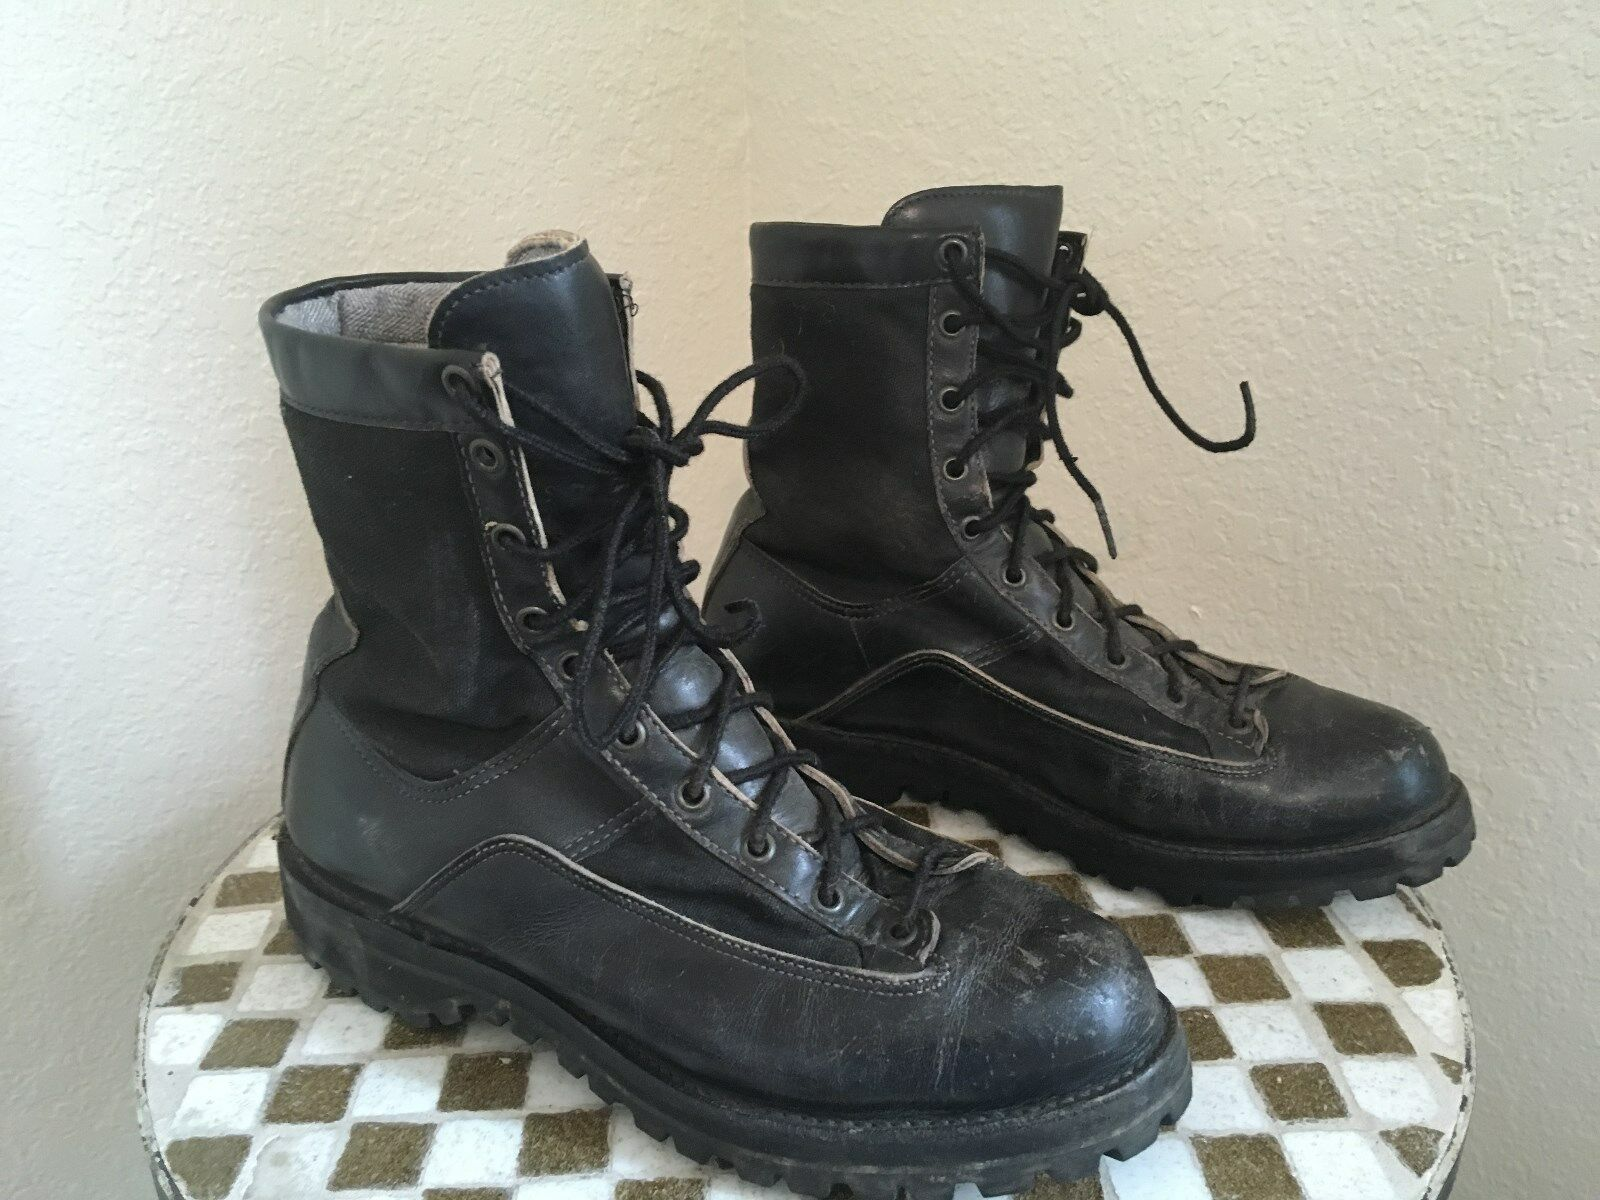 MADE MADE MADE IN USA DISTRESSED VINTAGE DANNER schwarz MILITARY LACE UP DRILL Stiefel 9 D 981ebe